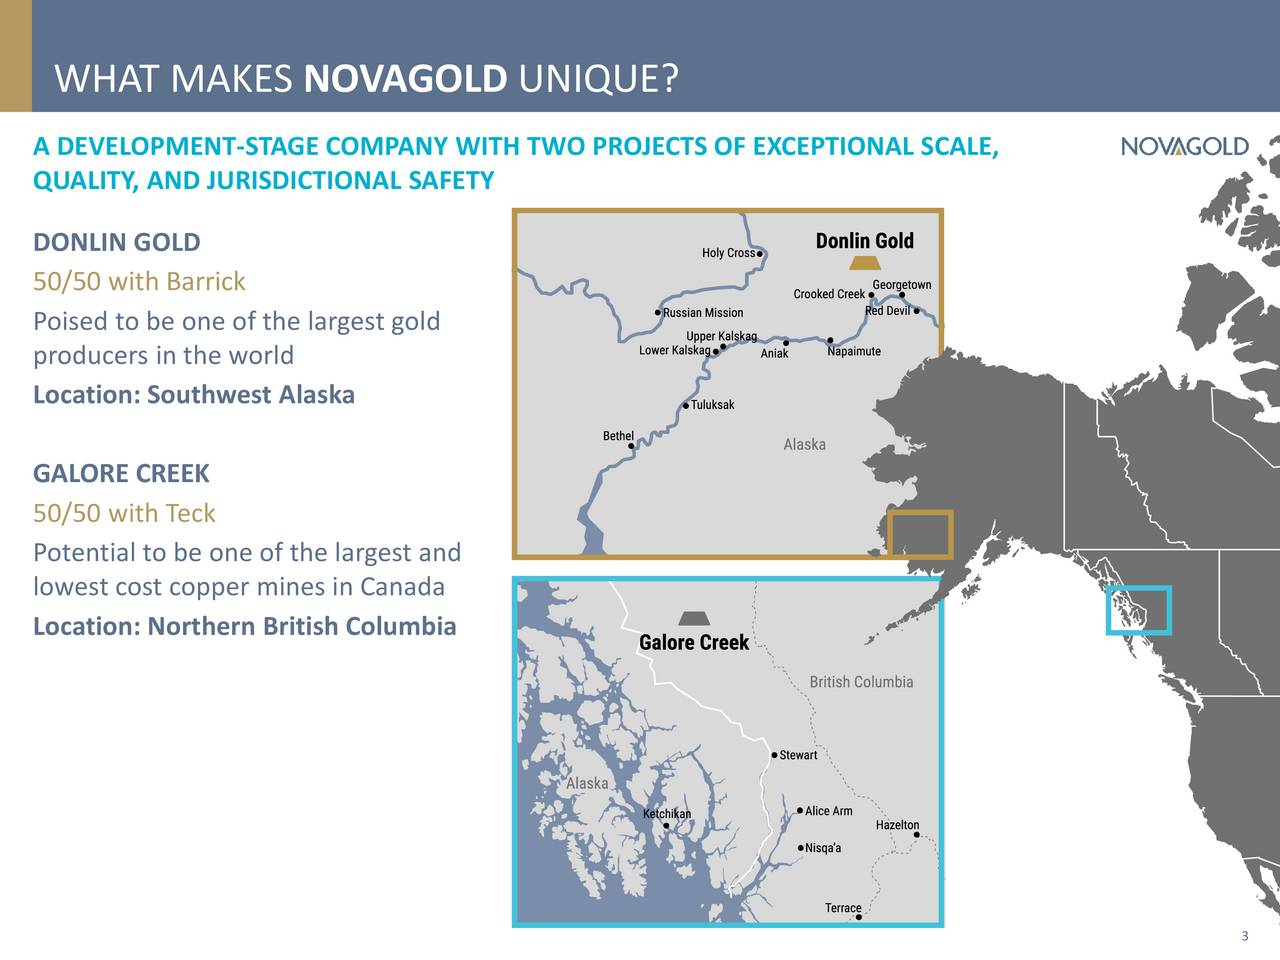 A DEVELOPMENT-STAGE COMPANY WITH TWO PROJECTS OF EXCEPTIONAL SCALE, QUALITY, AND JURISDICTIONAL SAFETY DONLIN GOLD 50/50 with Barrick Poised to be one of the largest gold producers in the world Location: Southwest Alaska GALORE CREEK 50/50 with Teck Potential to be one of the largest and lowest cost copper mines in Canada Location: Northern British Columbia 3